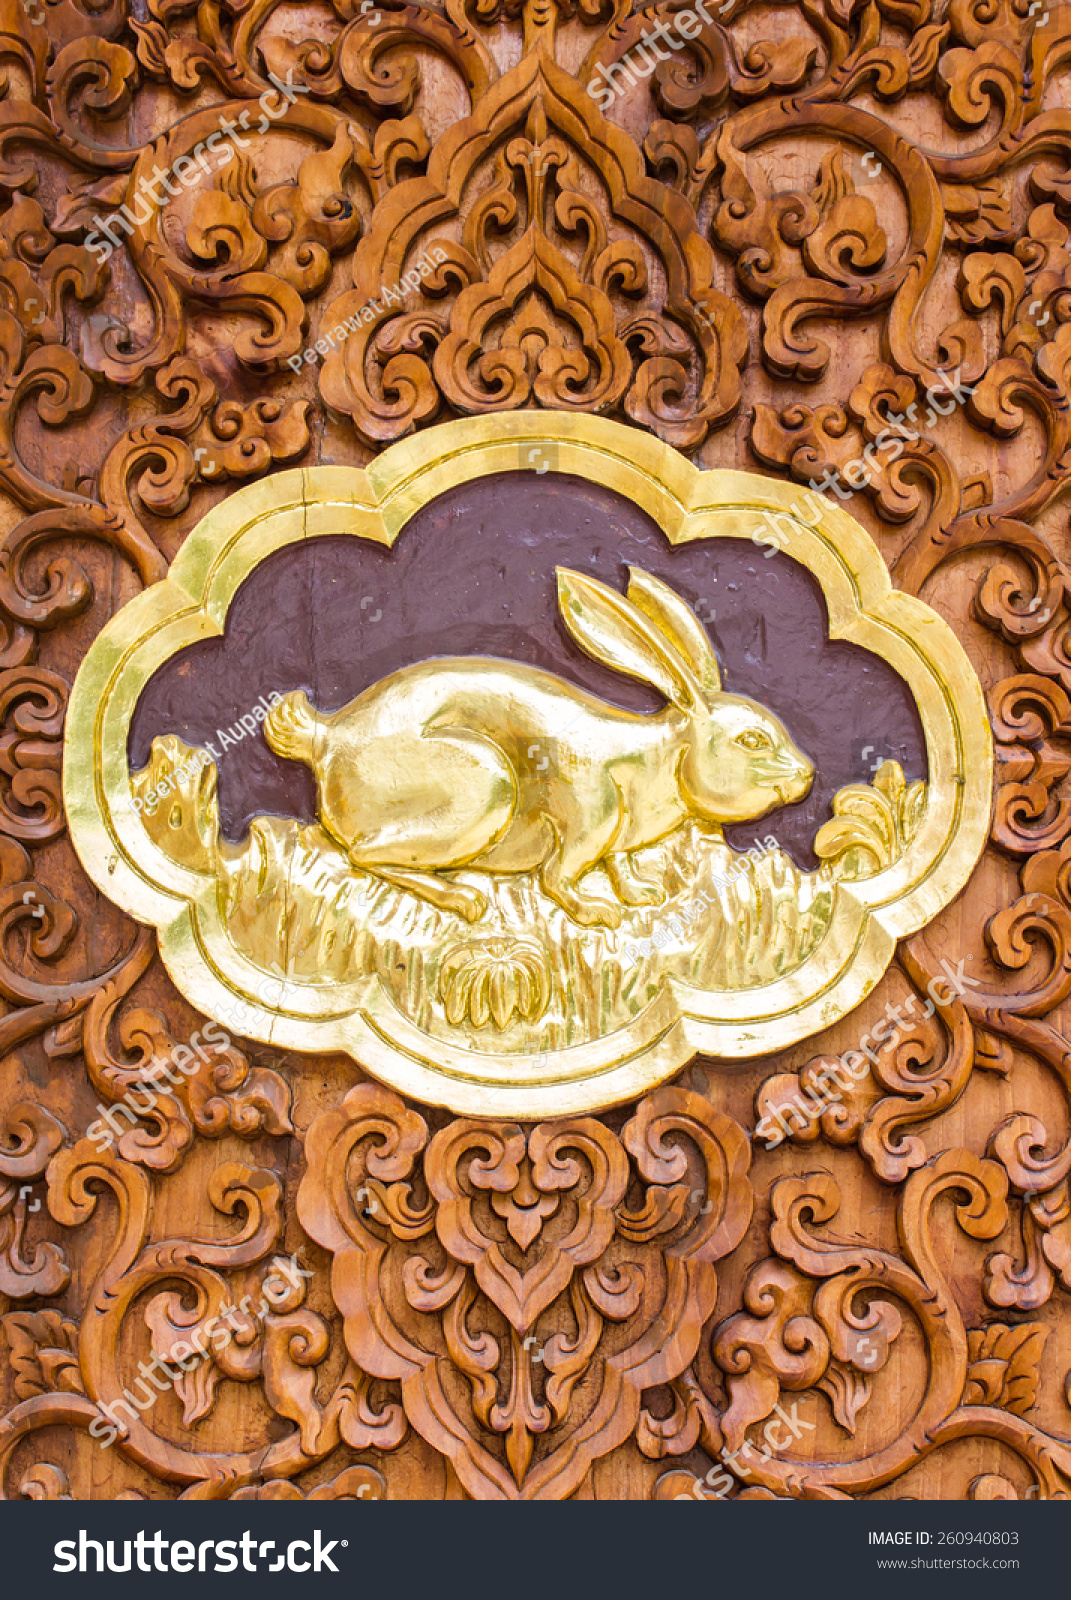 Rabbit wood carving wall sculptures thai stock photo